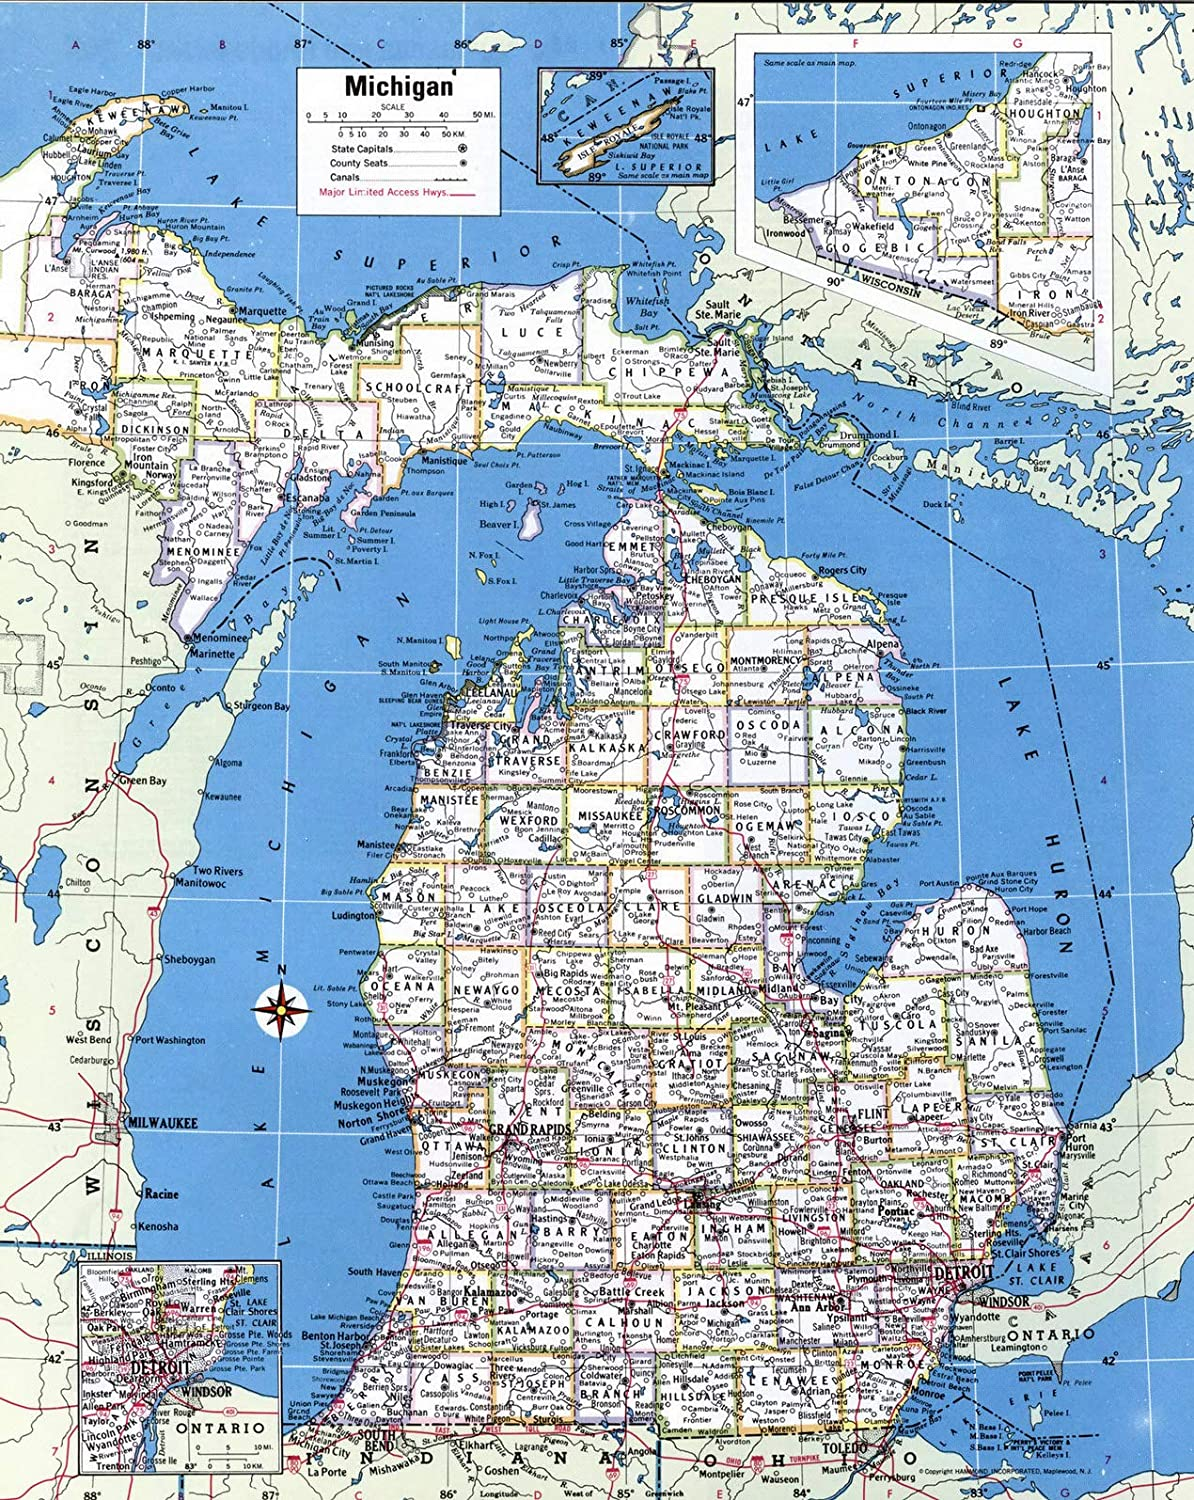 Michigan Map With Cities Amazon.com: Home Comforts Large Detailed Administrative map of